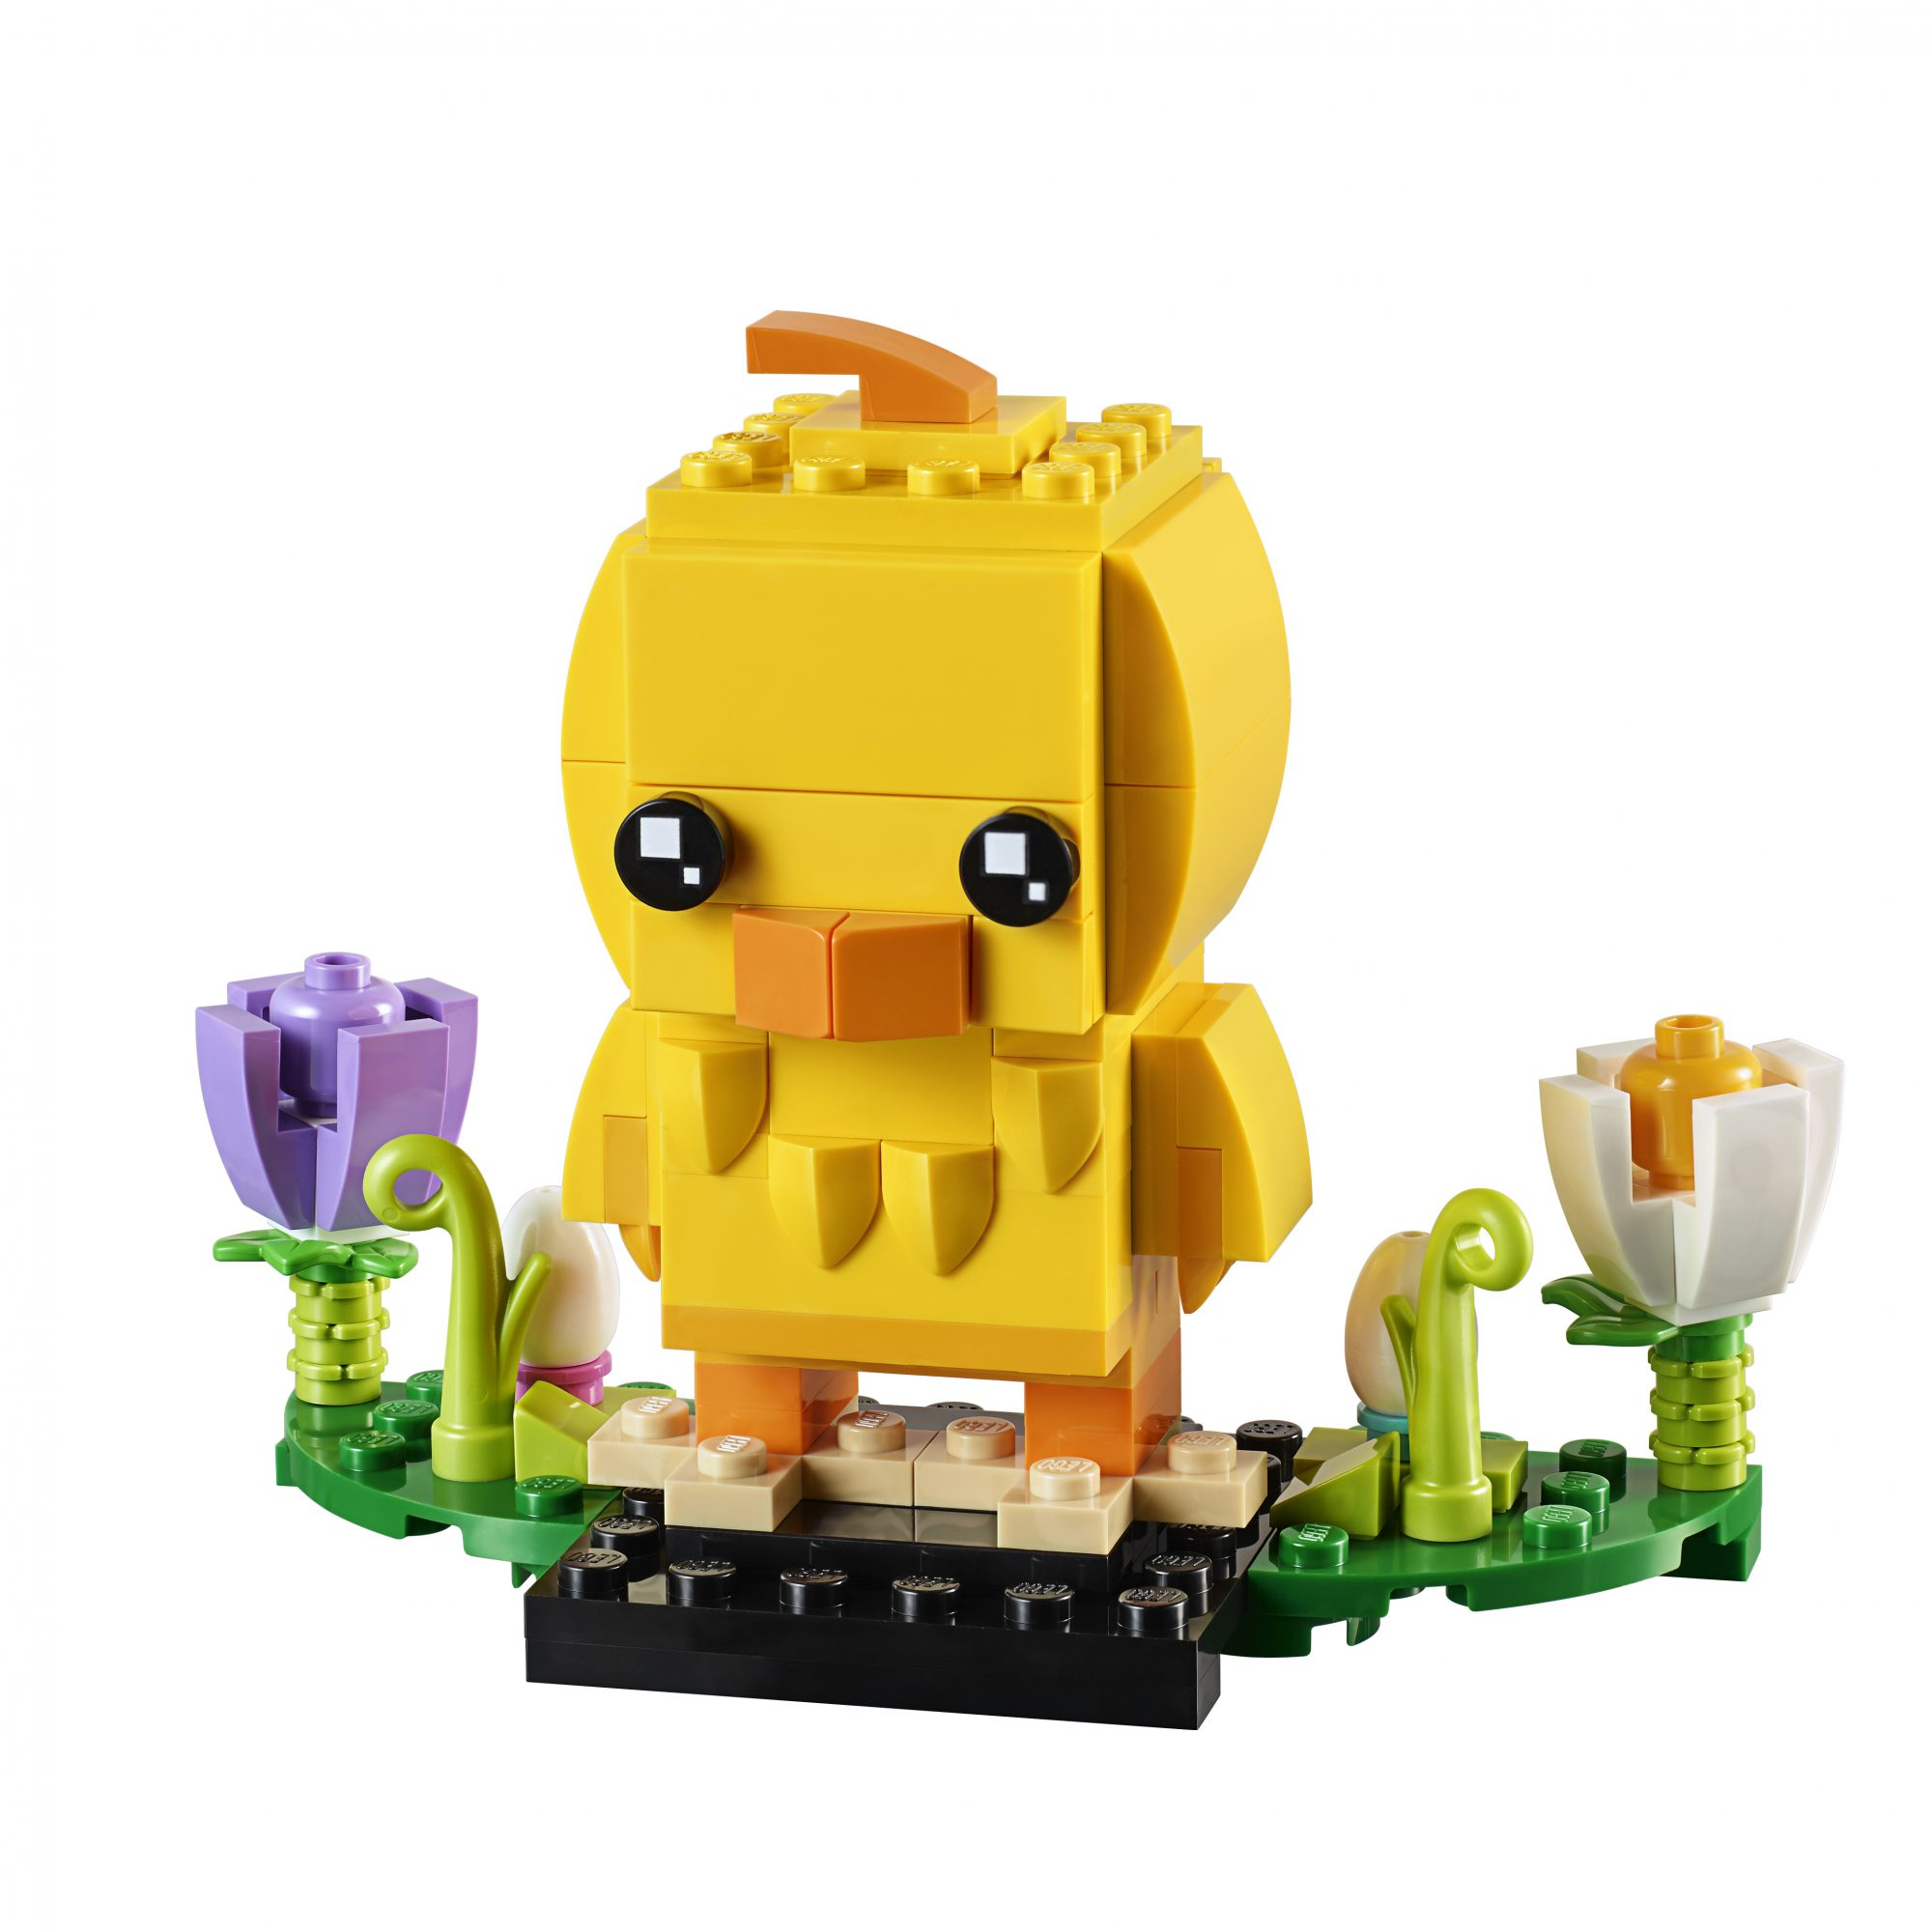 LEGO BrickHeadz Easter Chick